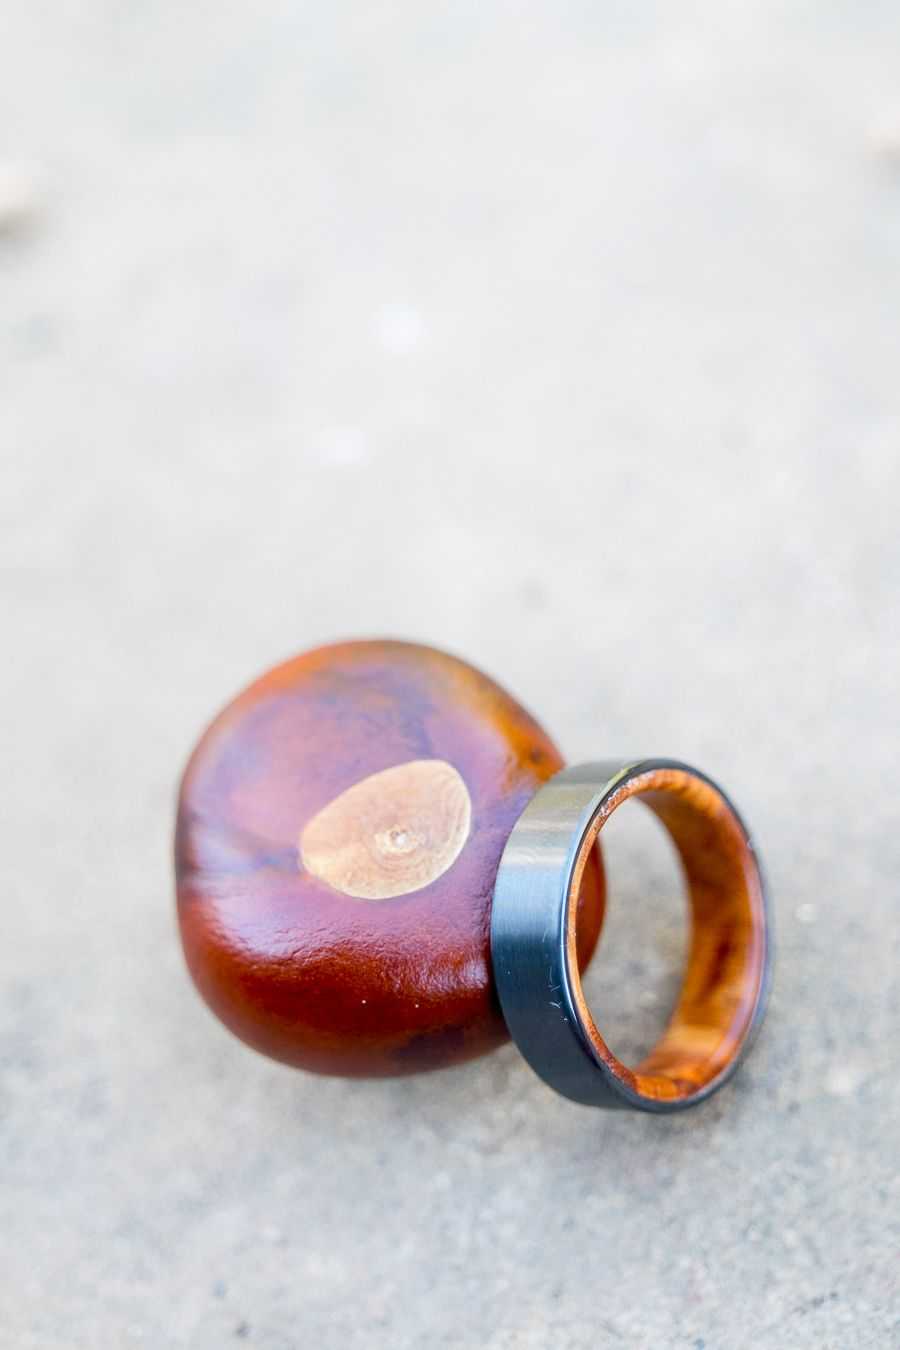 wedding ring with wood interior next to a buckeye